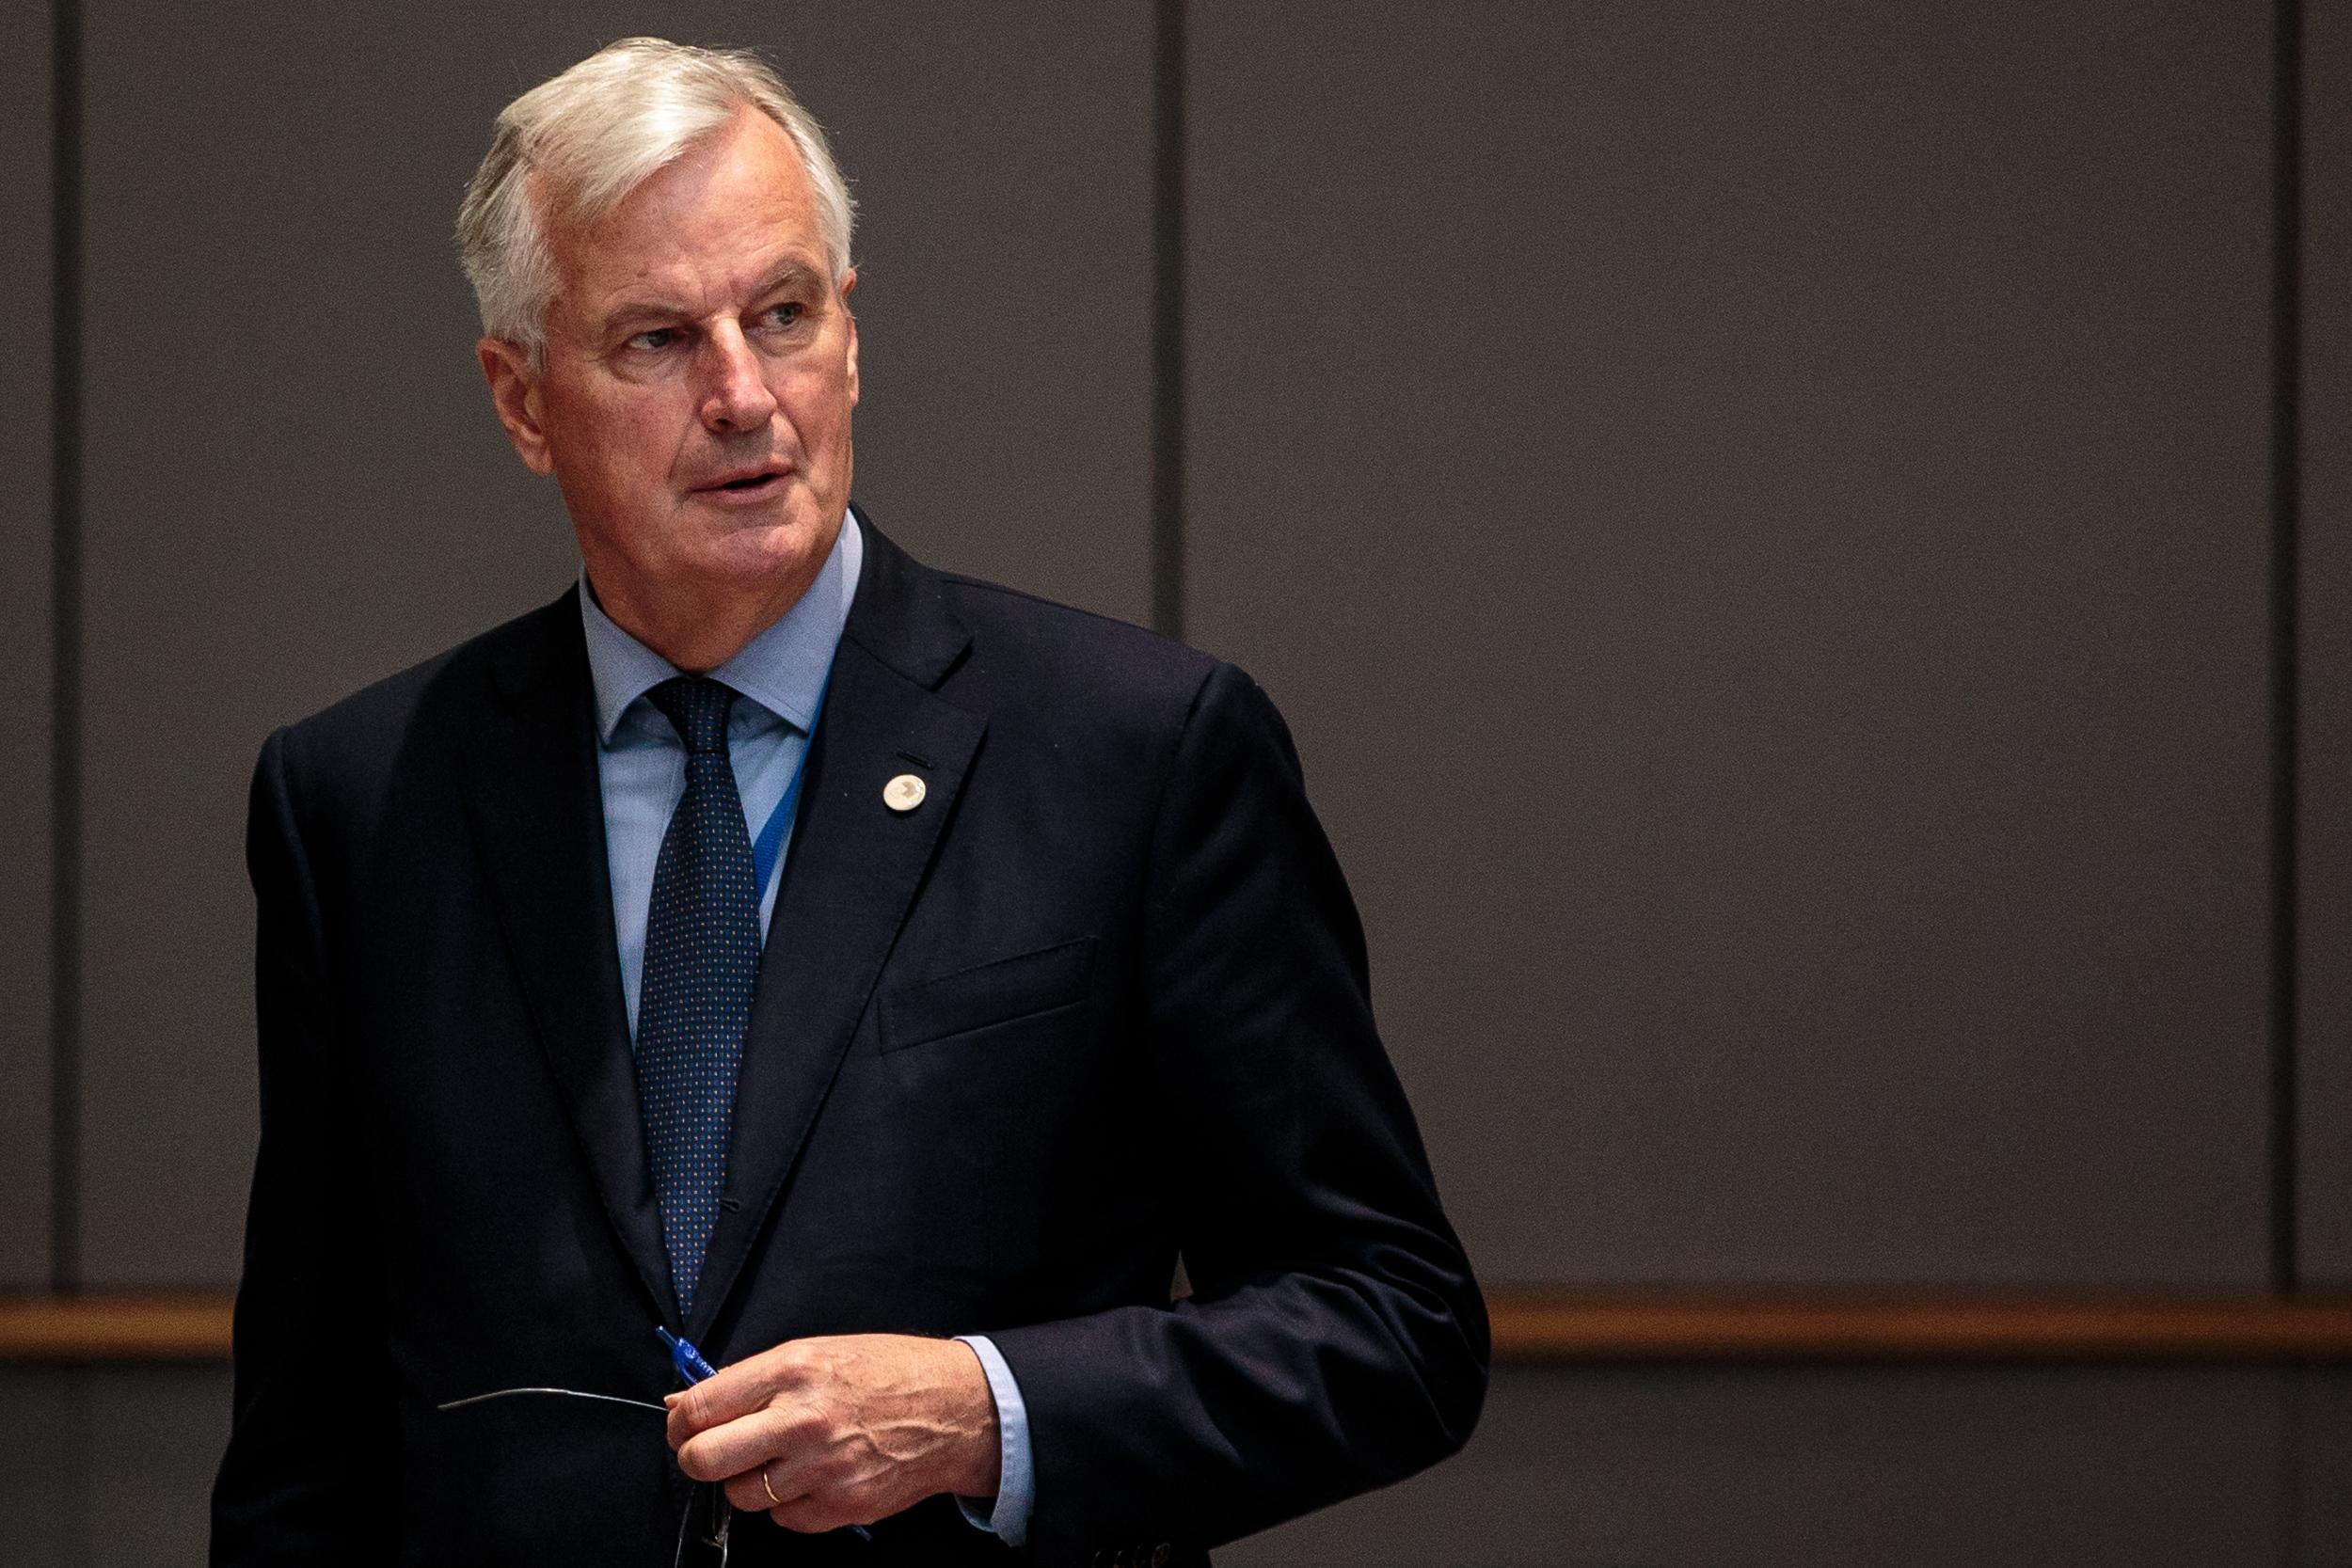 Brexit deal is 80% agreed, EU chief negotiator Michel Barnier says